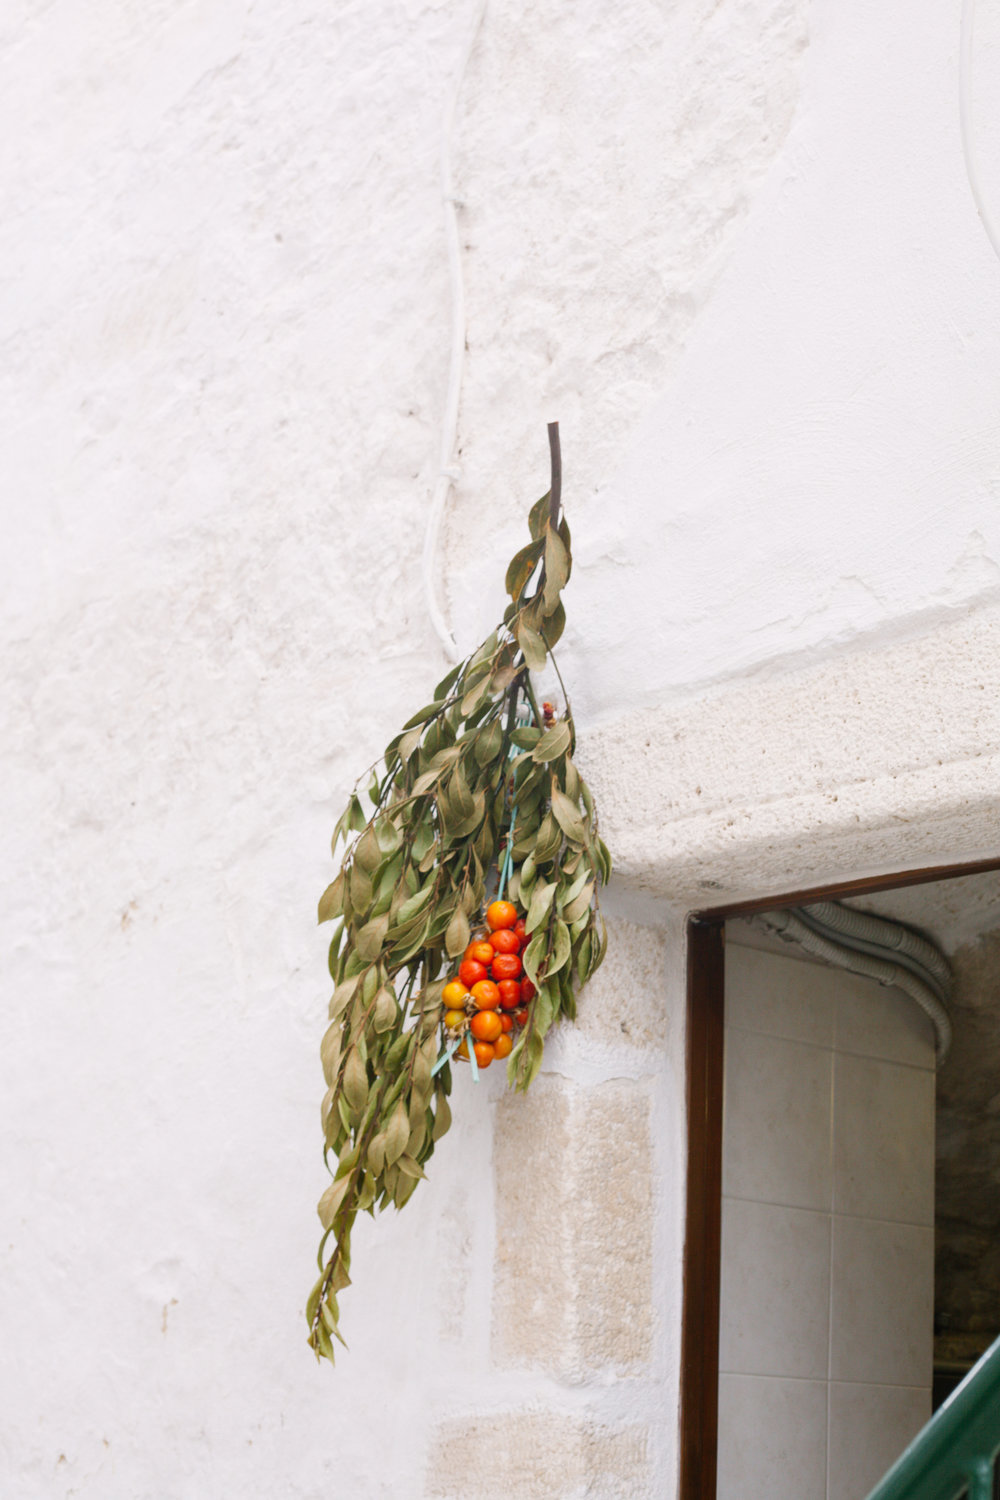 Puglia_travel_photographer_lucy_browning-1264.JPG